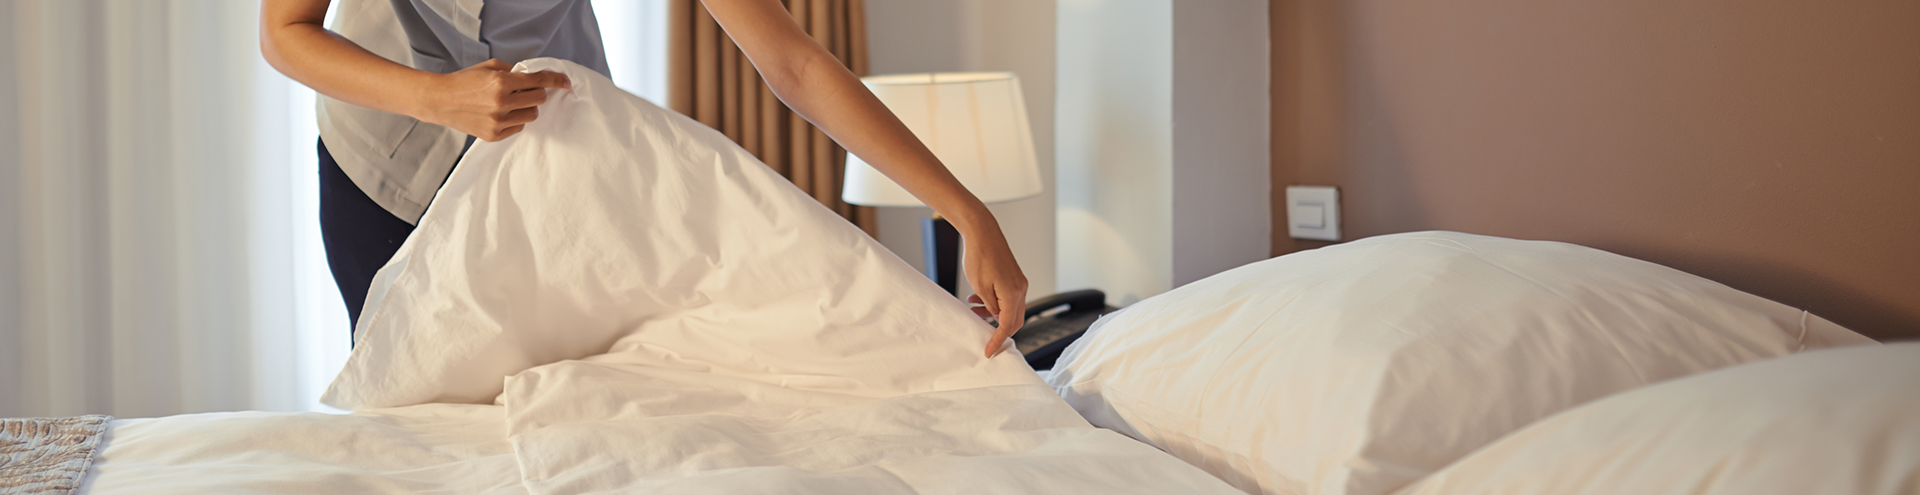 A hotel worker making a bed with fresh linens.